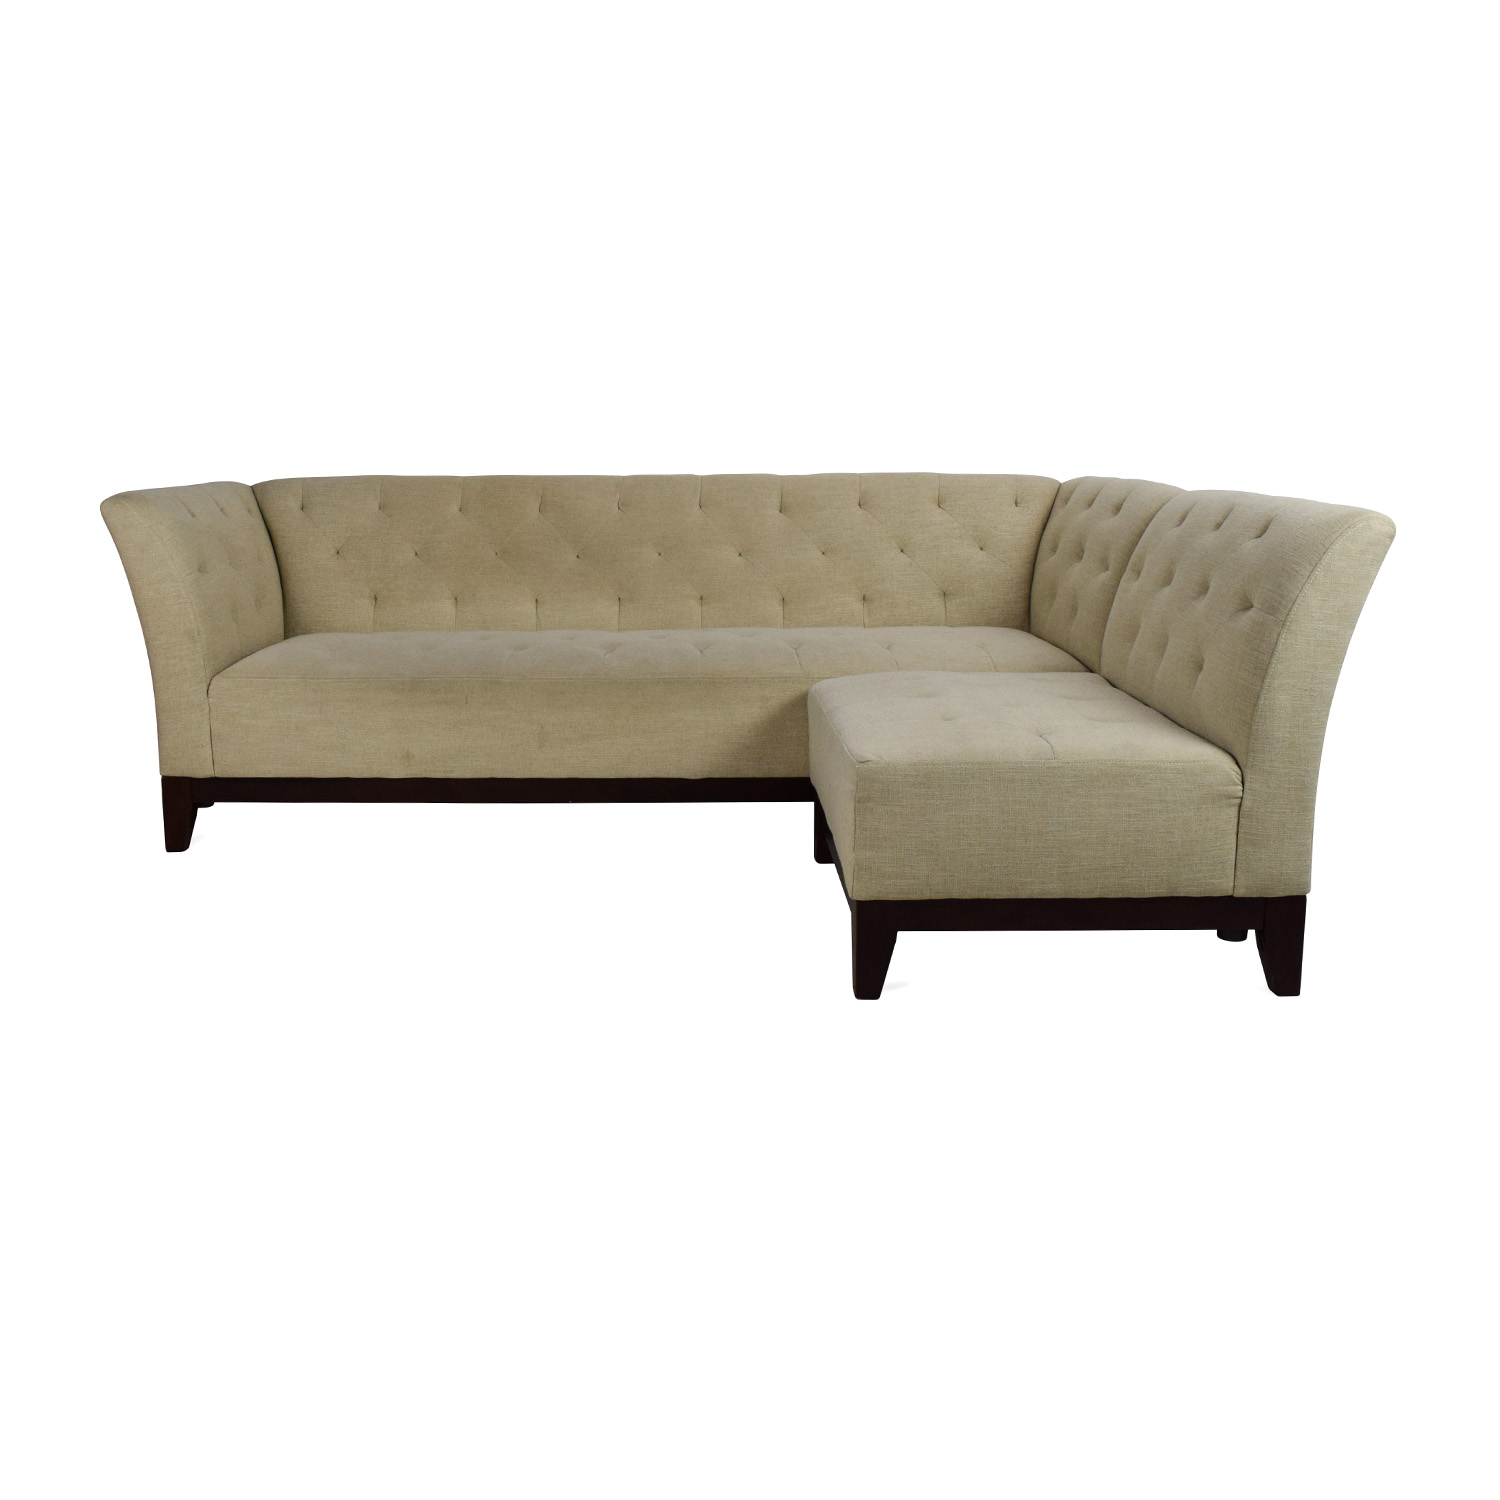 34% OFF Ashley Furniture Ashley Furniture Jessa Place Sectional